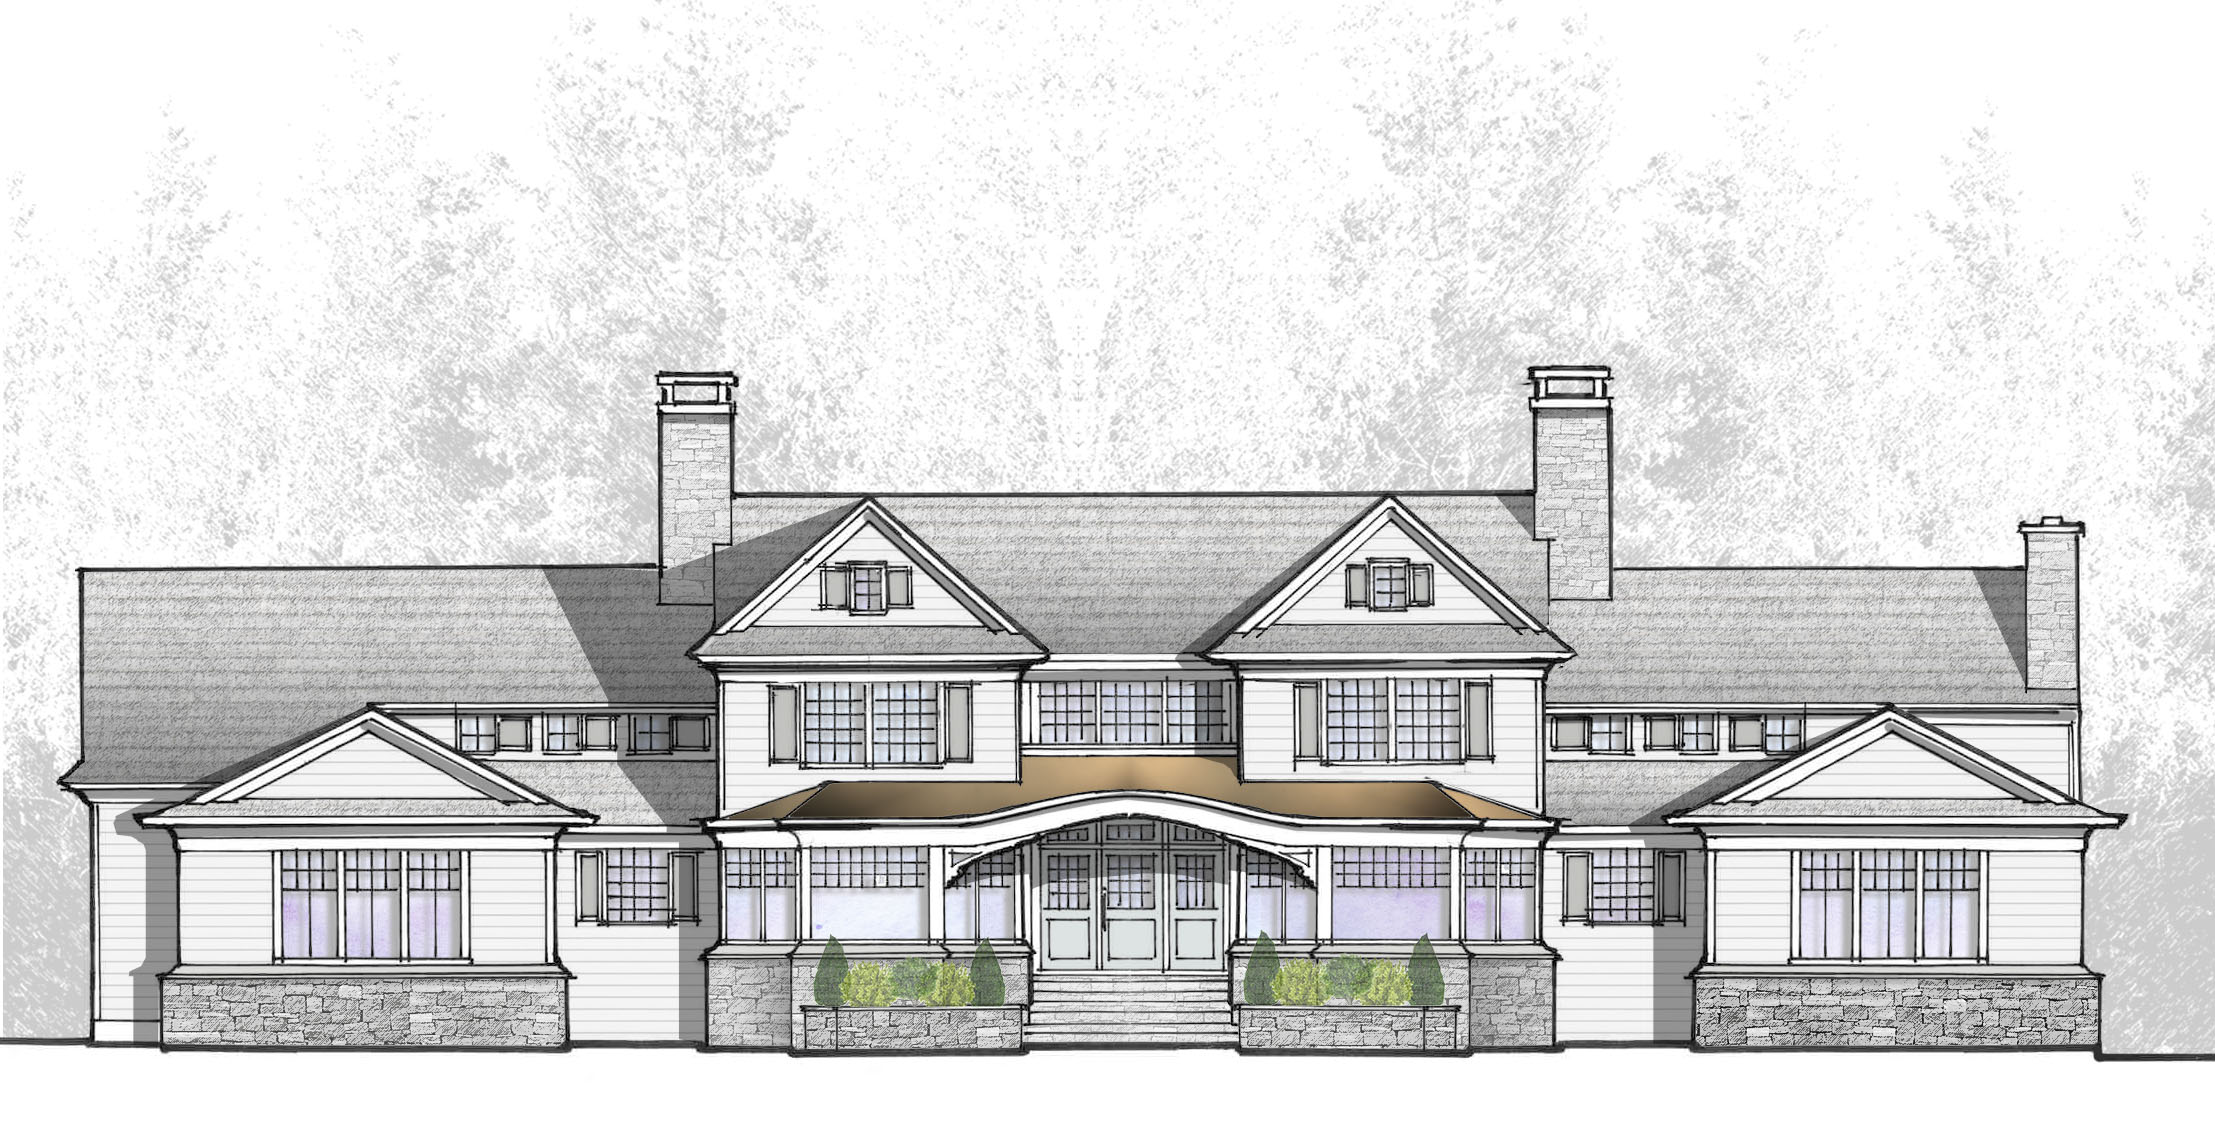 cardello architects hand sketch rendering